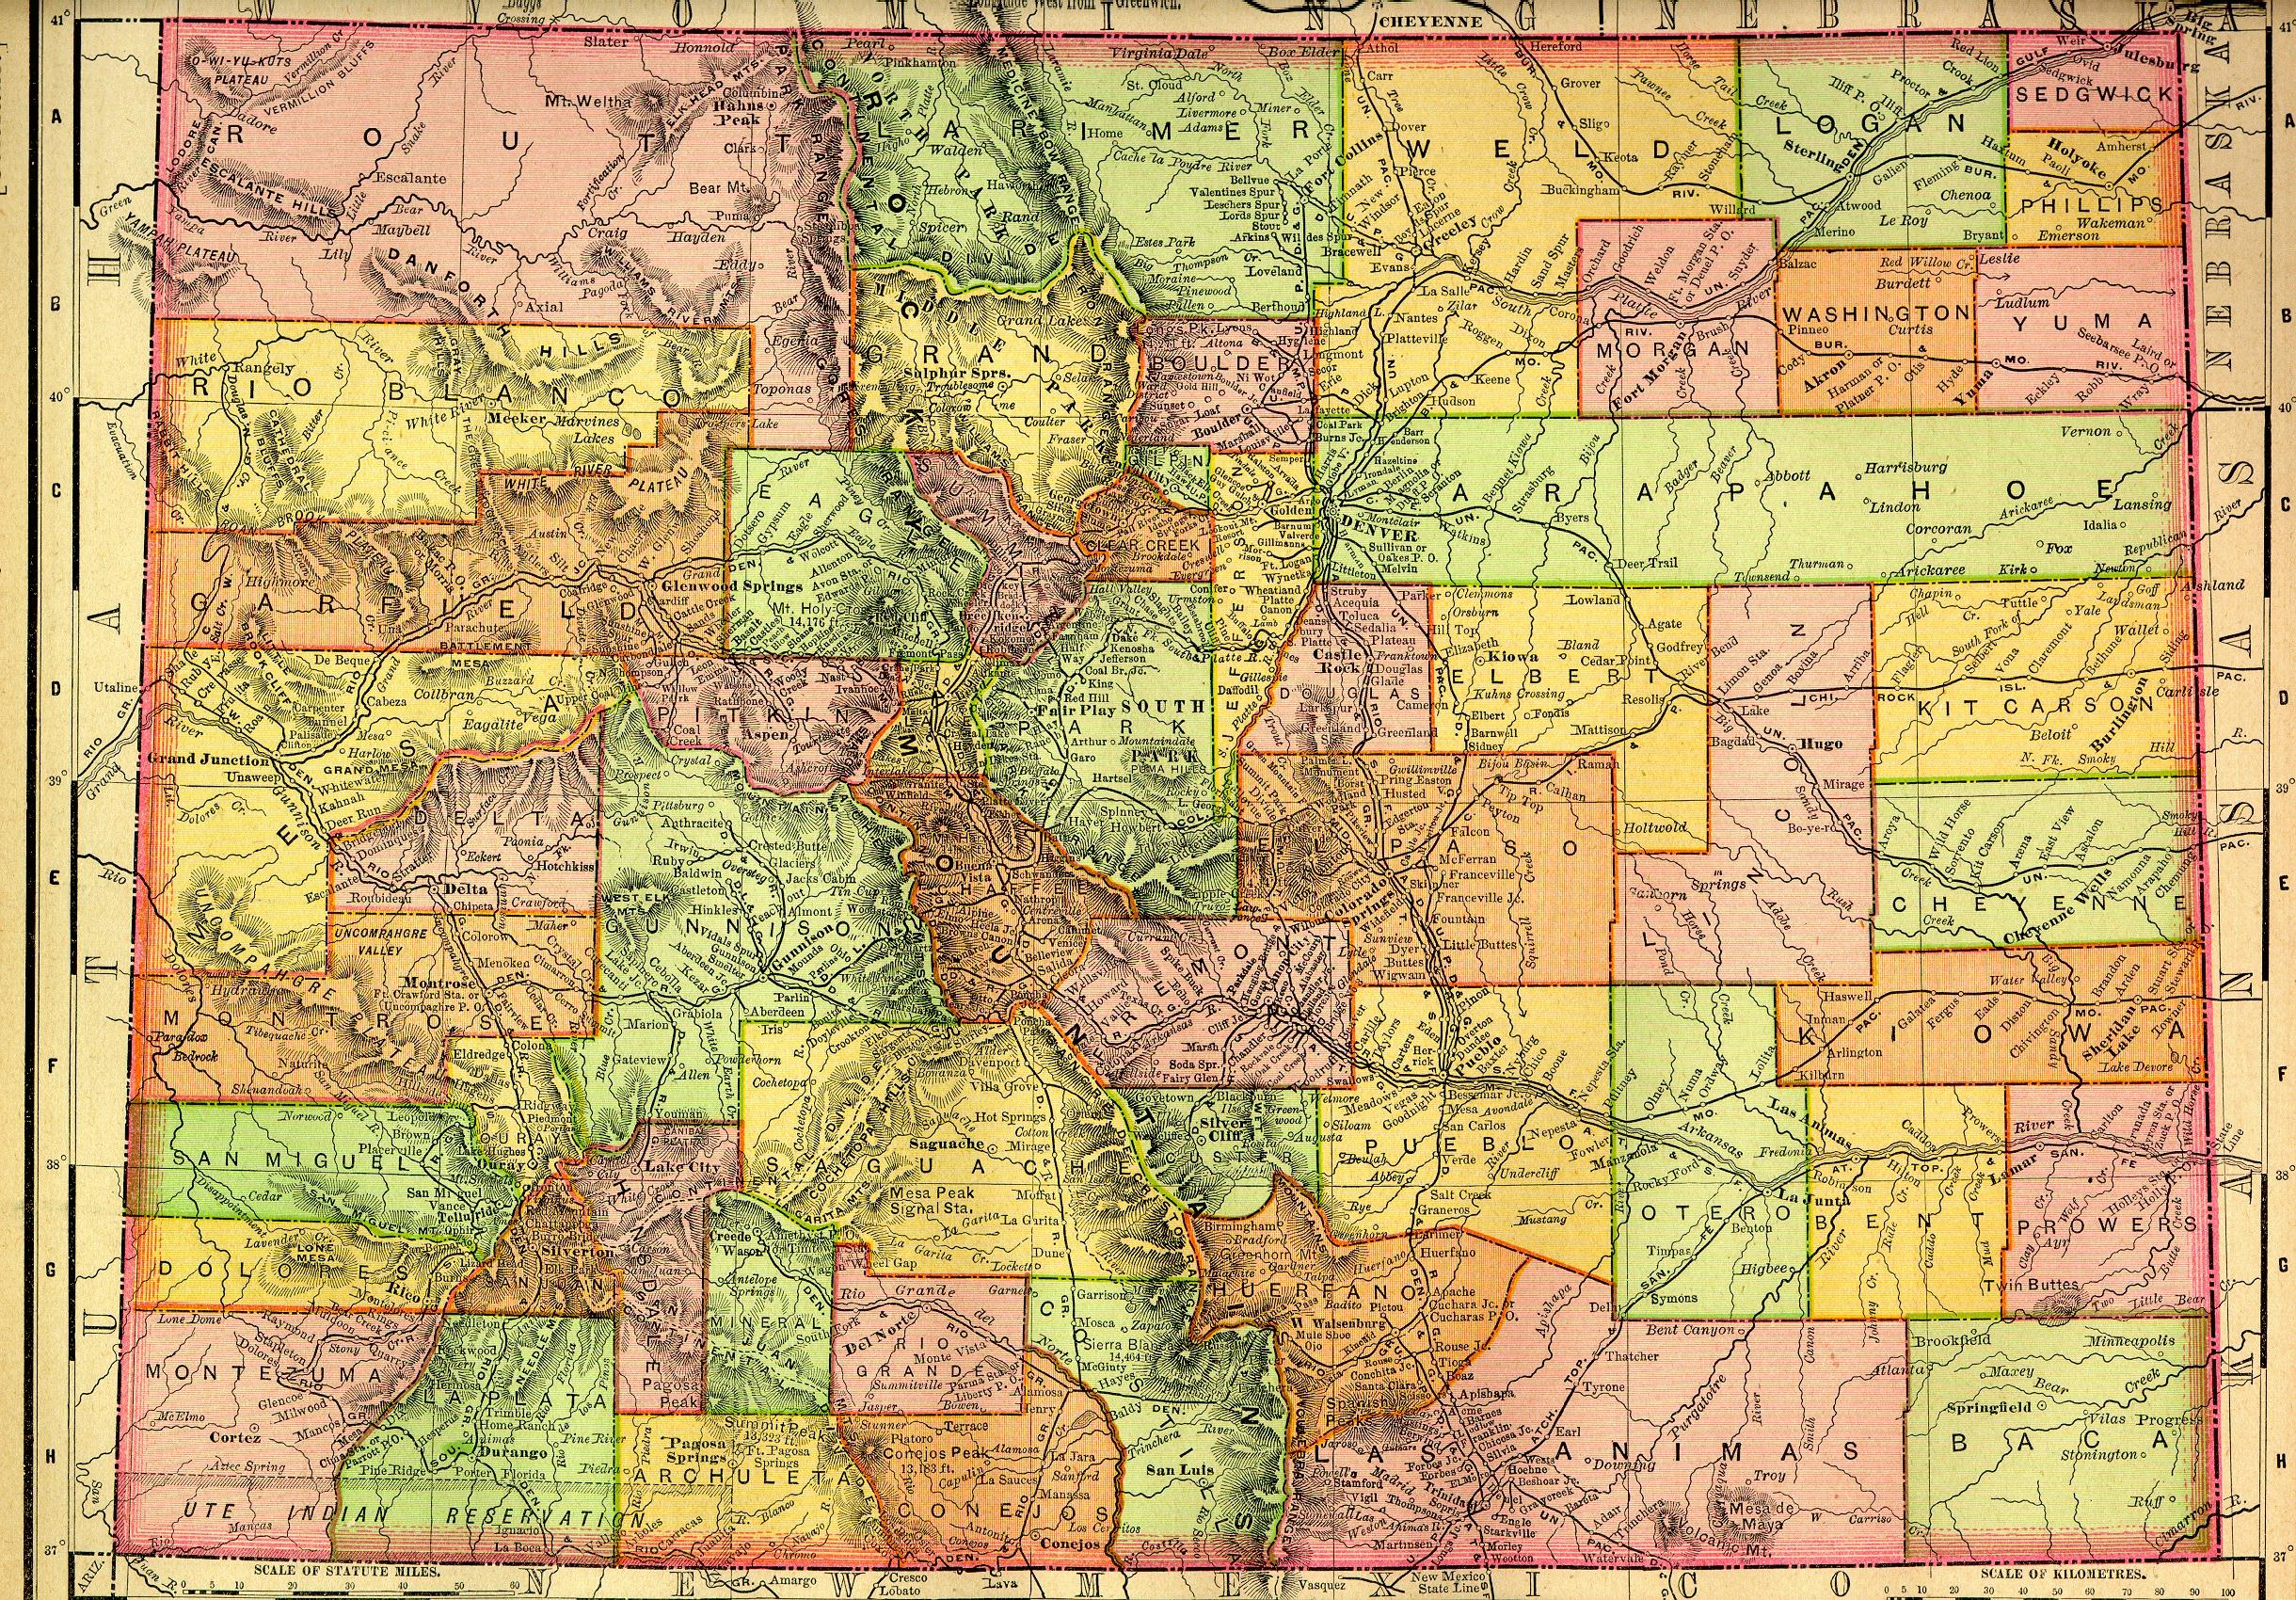 Colorado Maps US Digital Map Library Table Of Contents Page - Colorado road maps